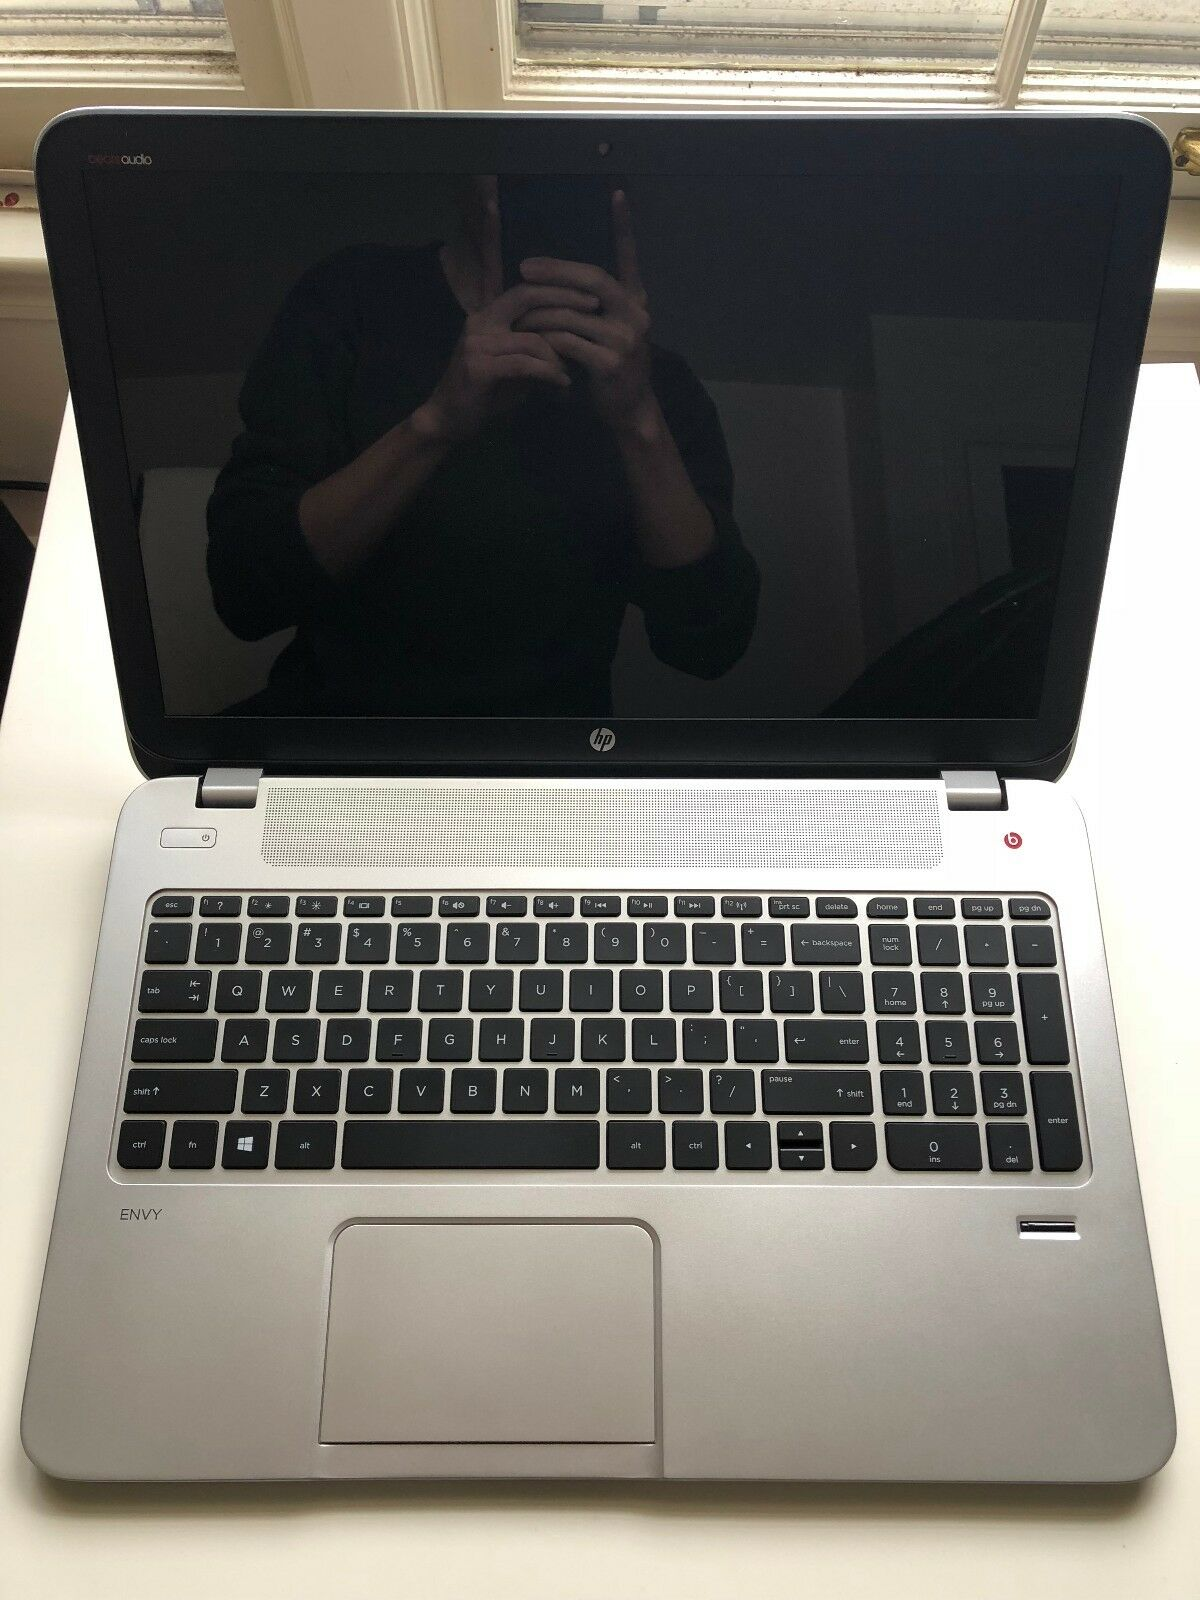 HP ENVY 15t-j100 Quad Edition 15.6in. (1TB, i7 4700MQ, 8GB, 840M)